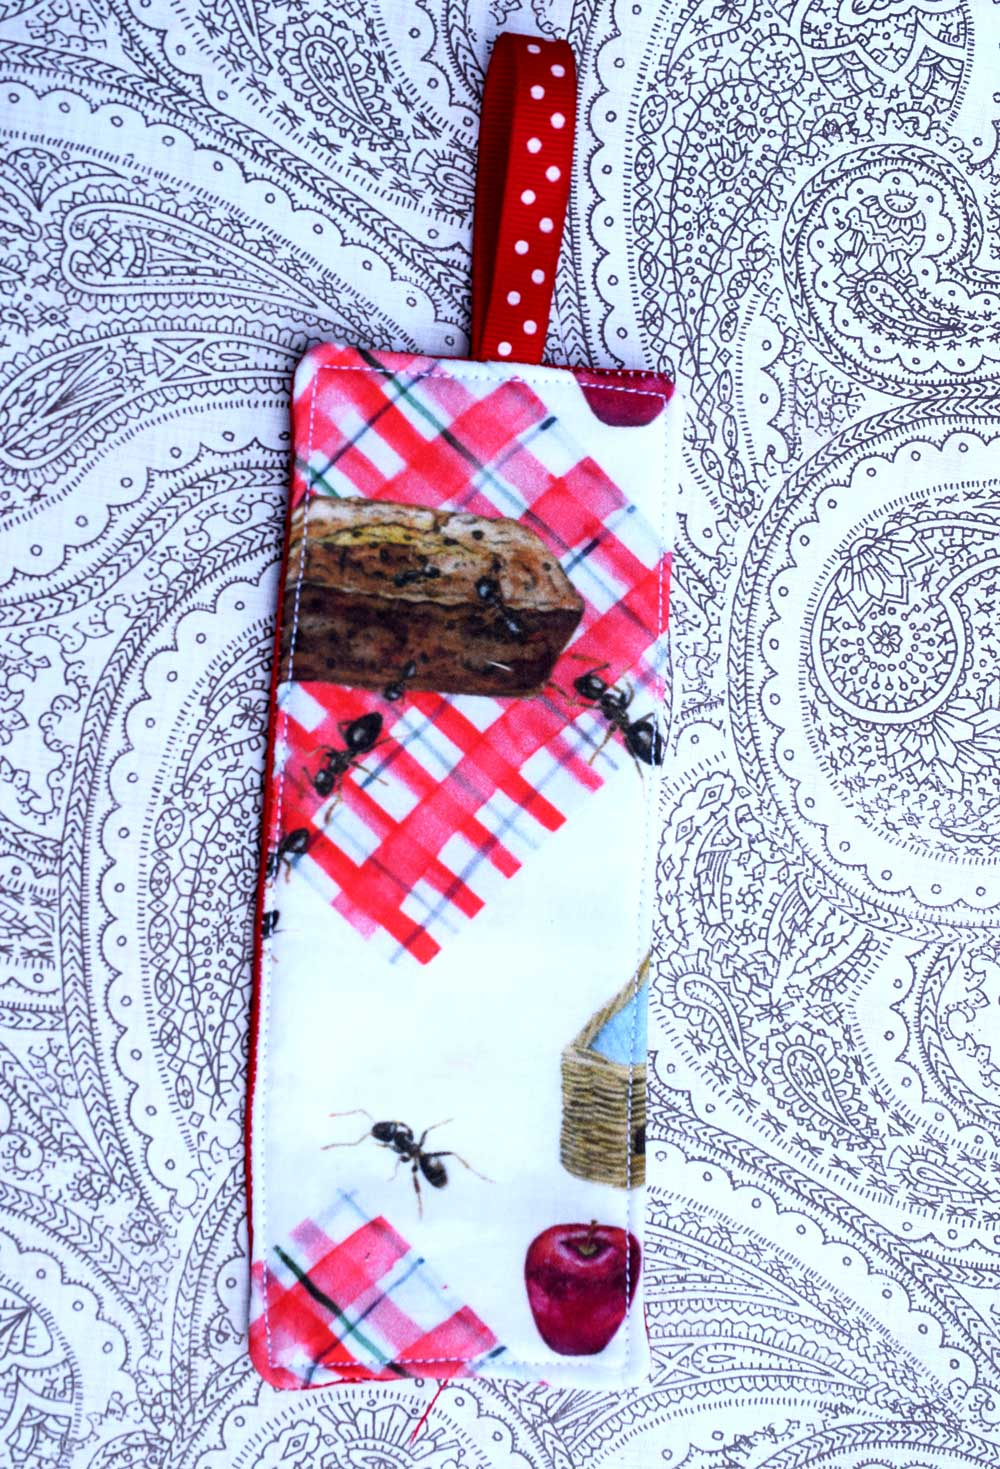 Here is an example of a bookmark with felt in the middle.